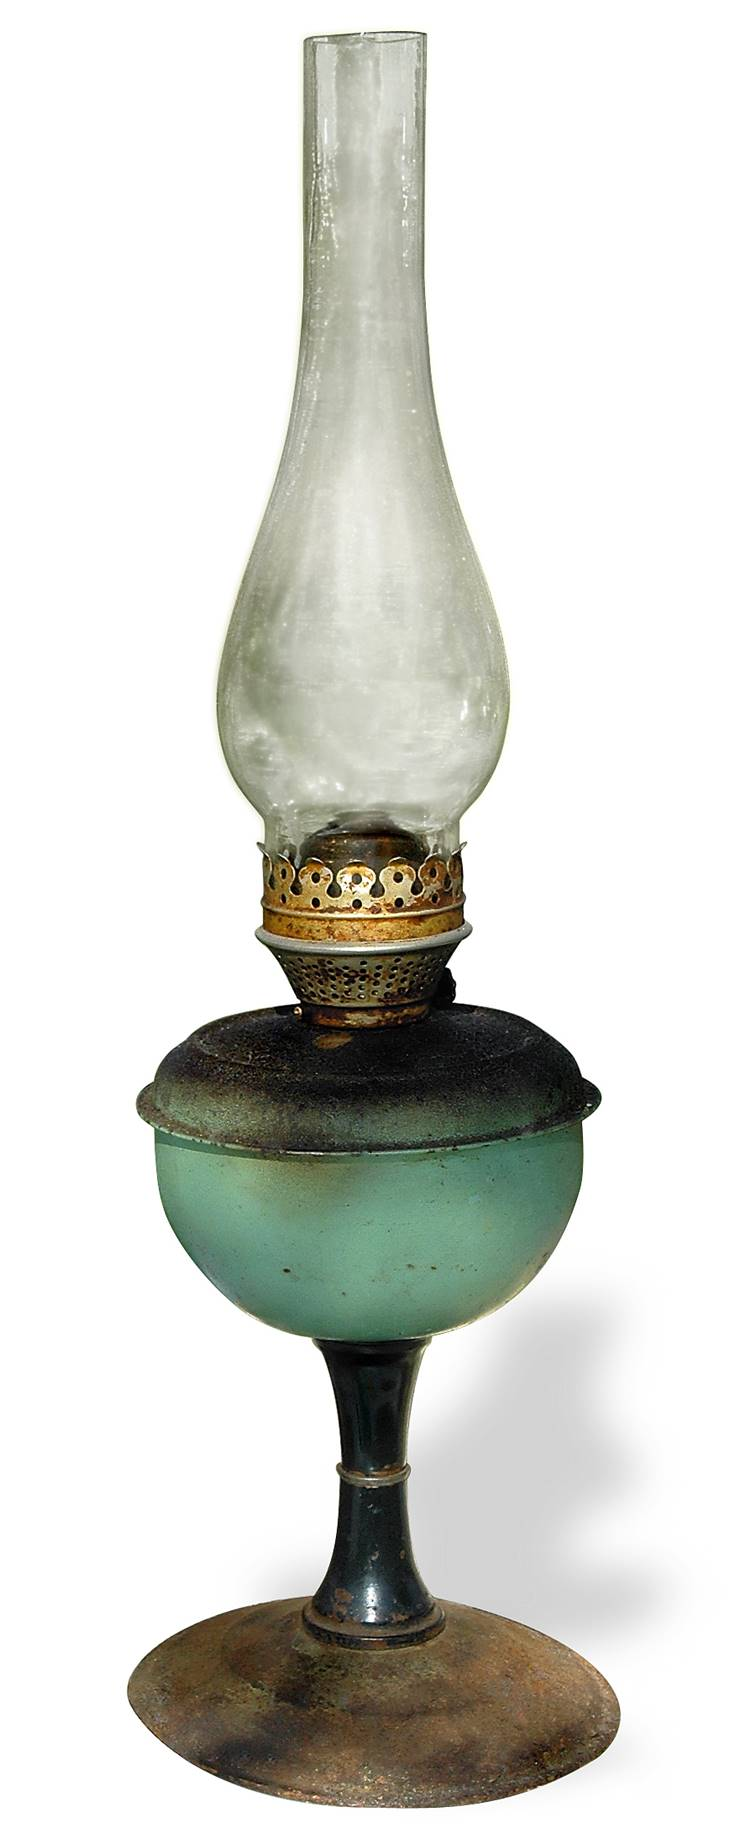 Old Kerosene Lamp